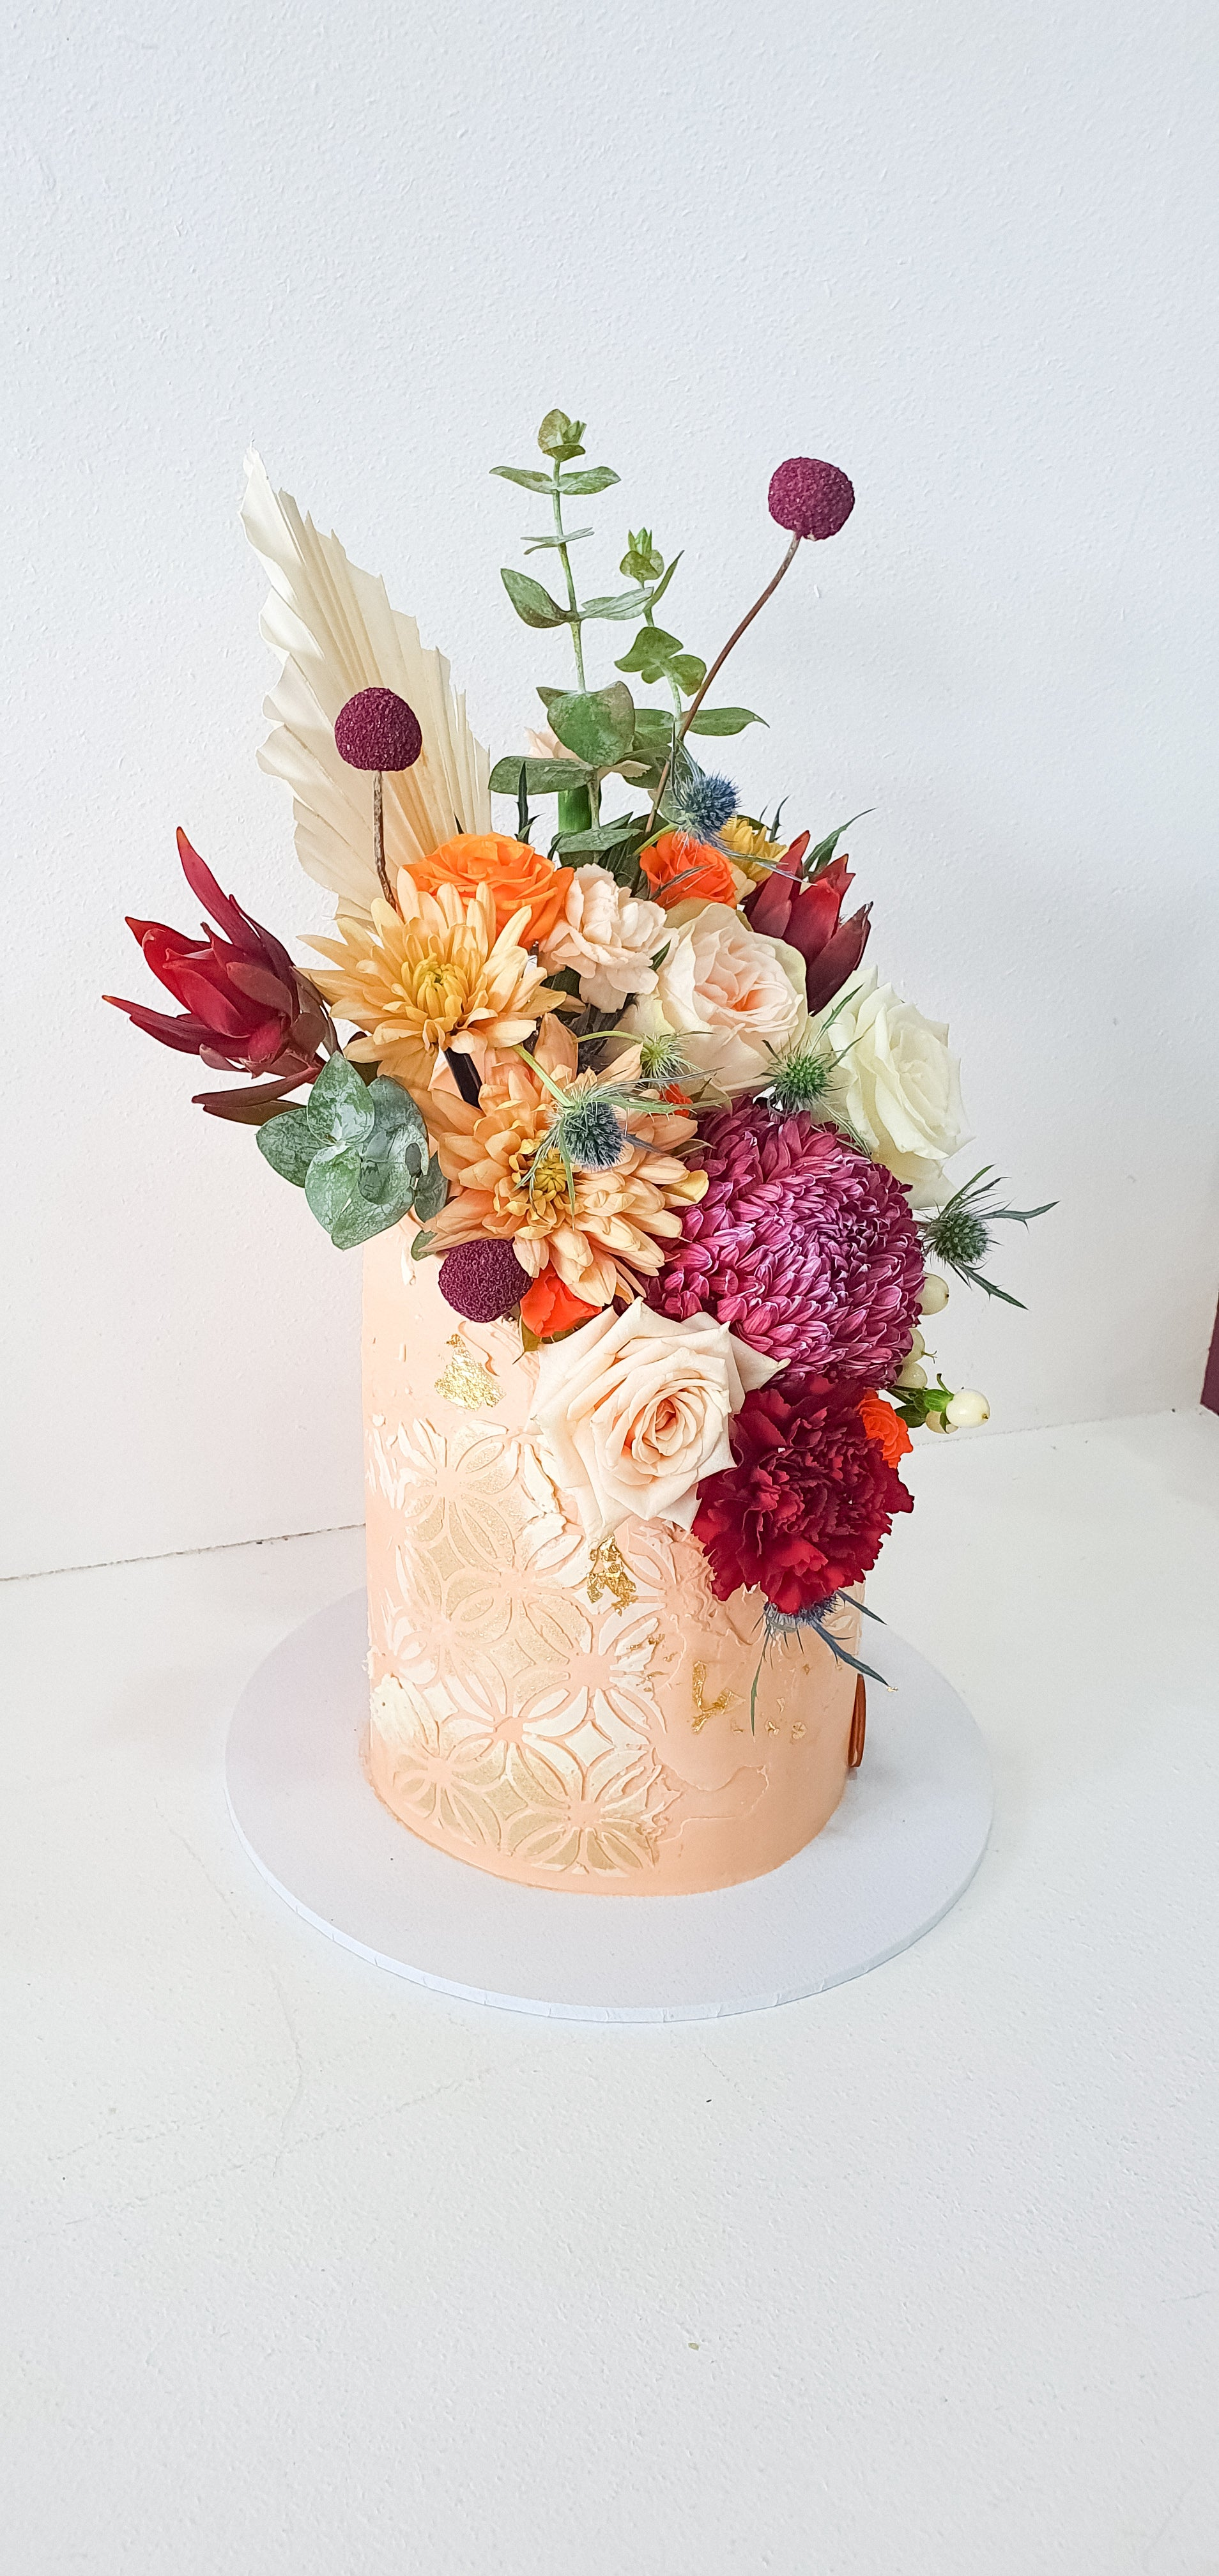 Floral Stencilled Rustic Cake (7 days Required)